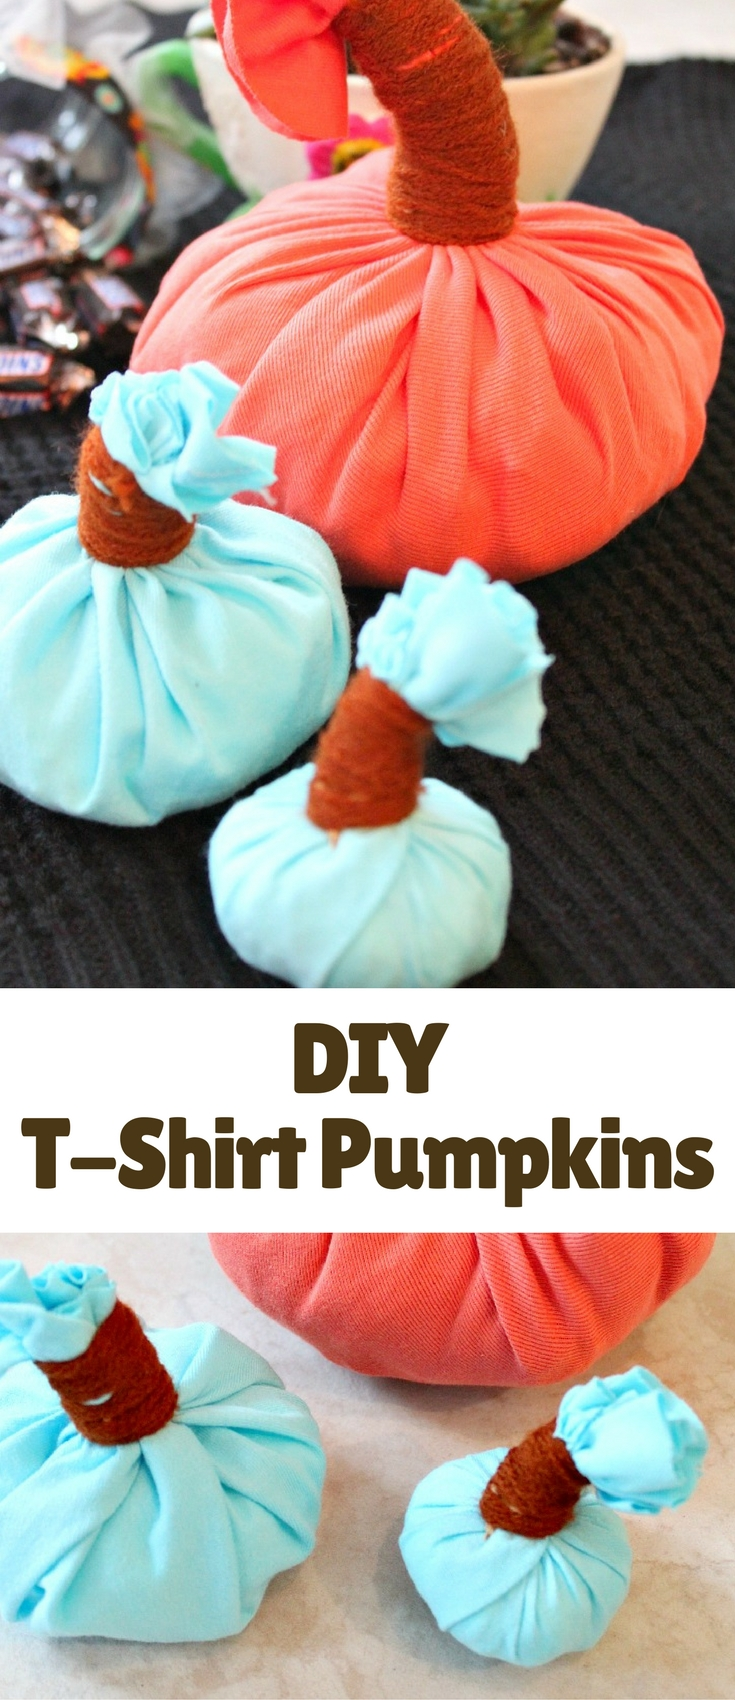 Need ideas for a fun and super frugal DIY home decor project to get your house pretty in fall? Here's a no carve DIY Pumpkin home decor, made out of old t-shirts and outgrown clothing.